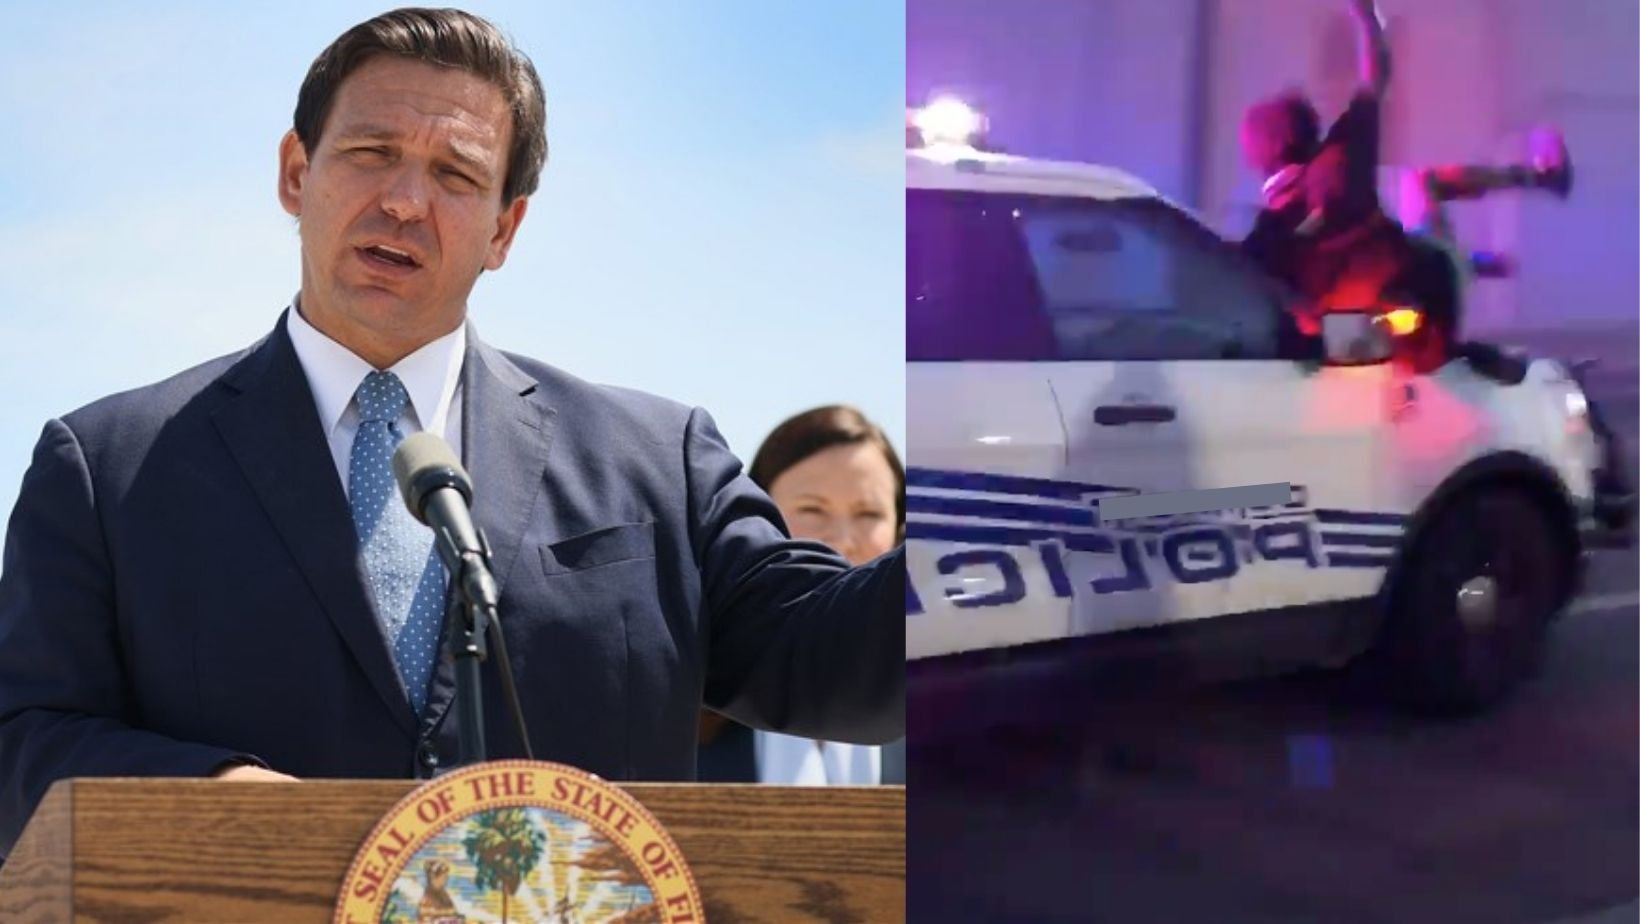 1 103.jpg?resize=1200,630 - Florida Governor Signs 'Anti-Riot' Bill That Allows Drivers To Run Over Protesters Without Being Held Accountable